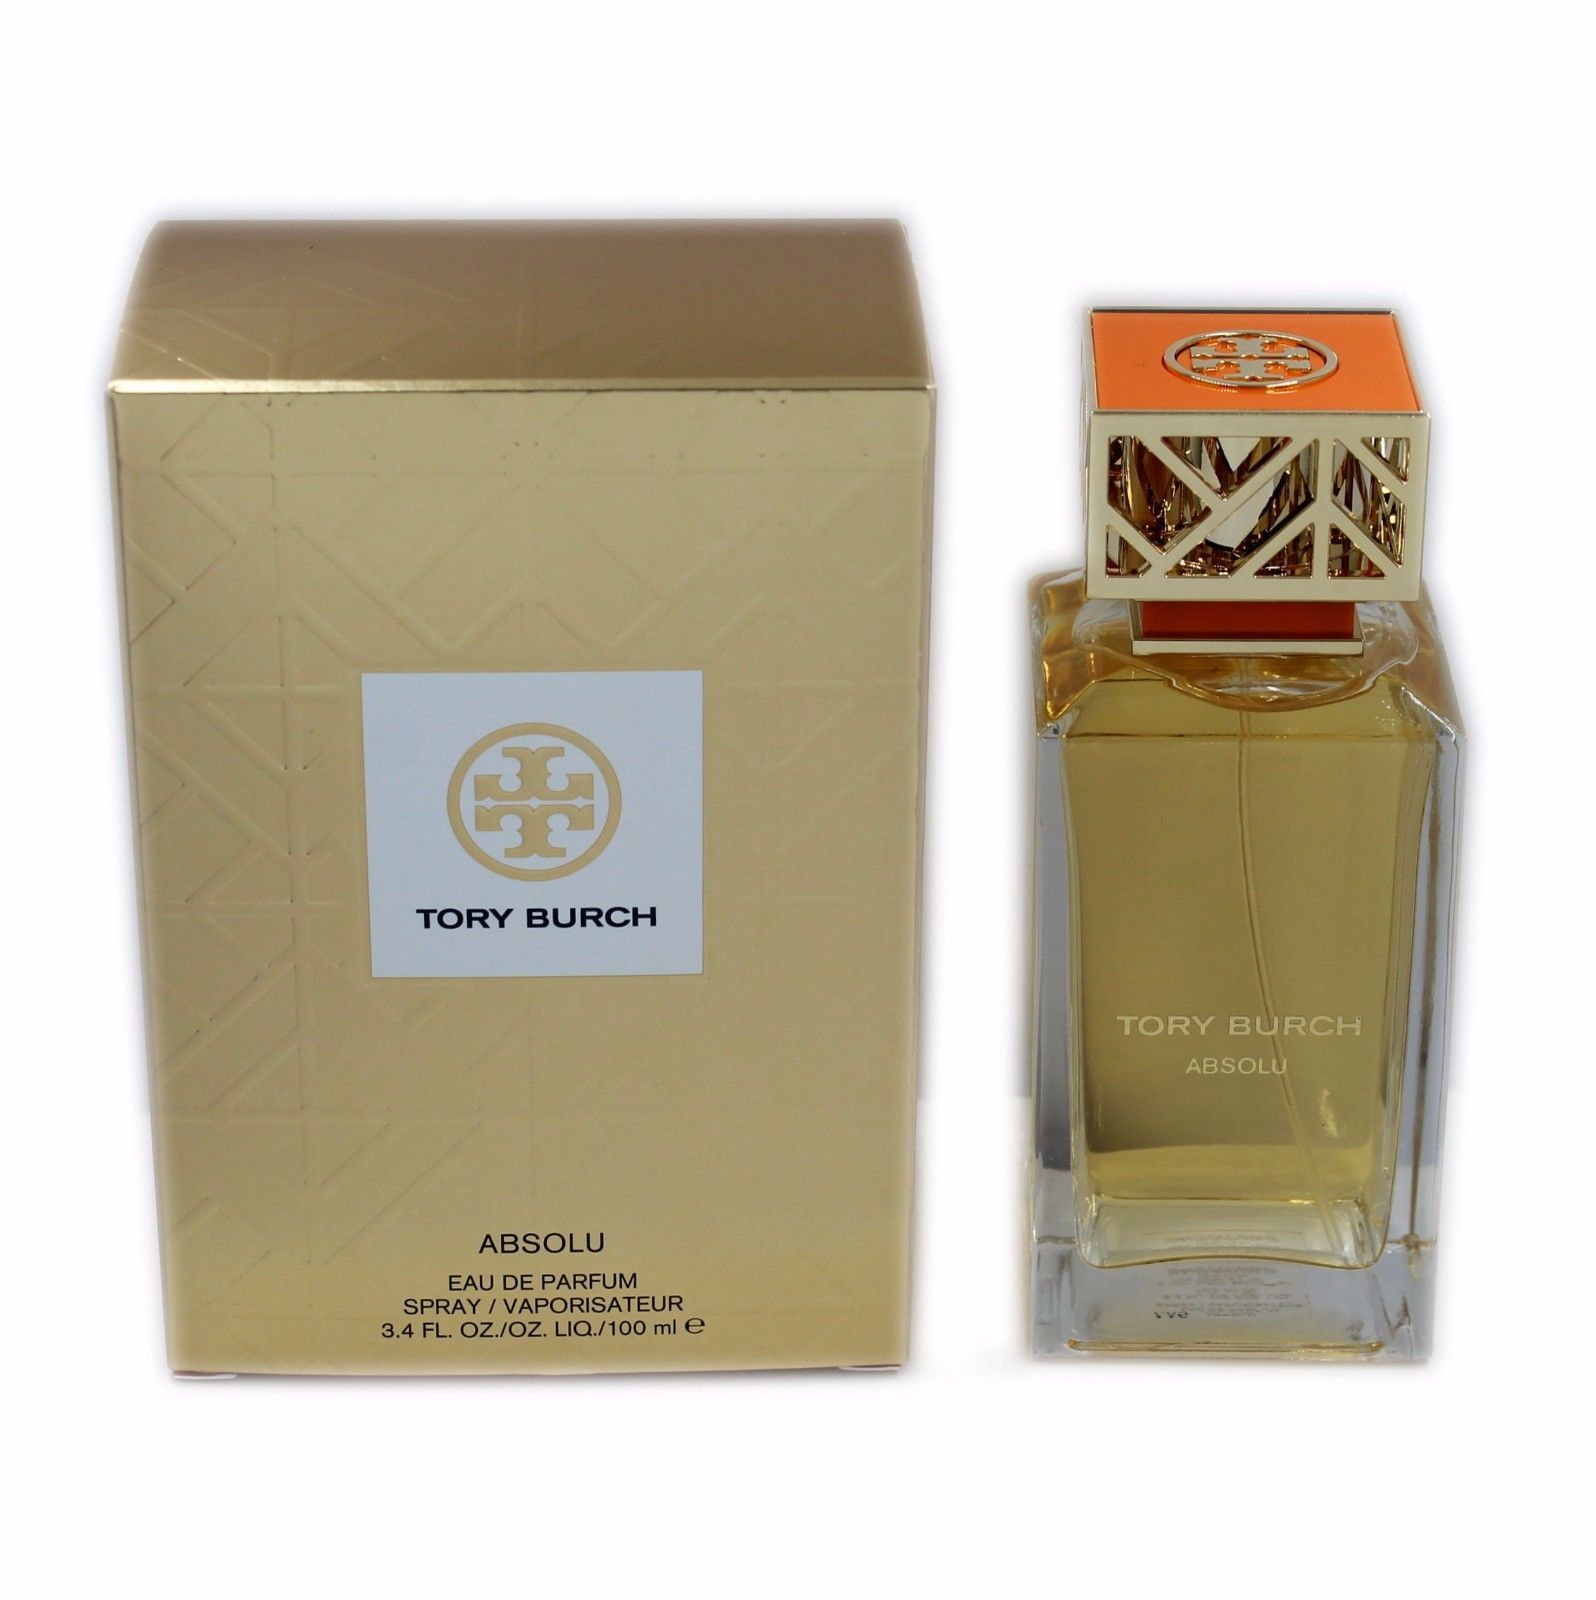 Primary image for TORY BURCH ABSOLU EAU DE PARFUM SPRAY 100 ML/3.4 FL.OZ. NIB-5H3P-01